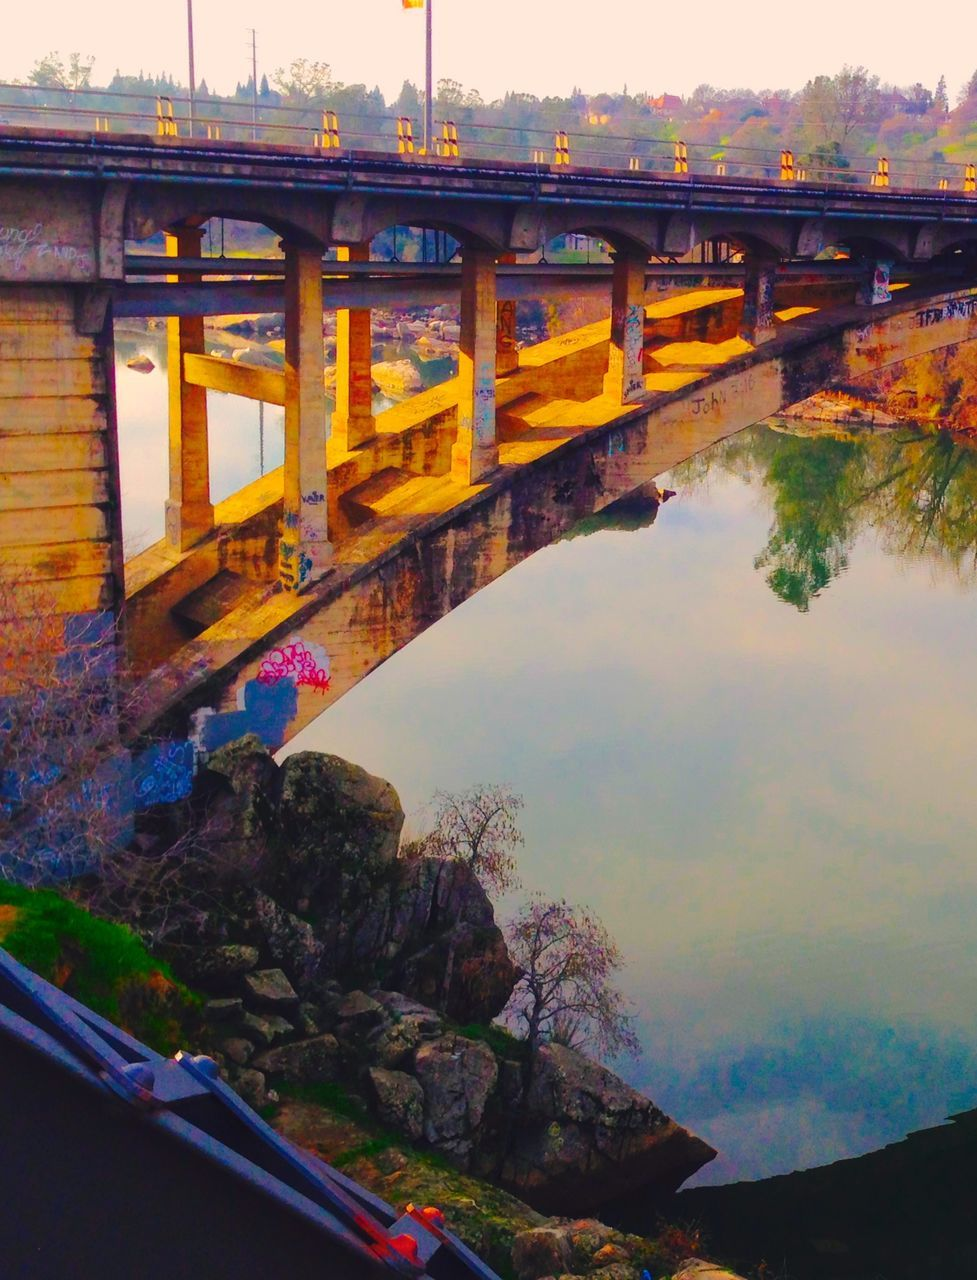 bridge - man made structure, connection, architecture, built structure, engineering, transportation, bridge, water, outdoors, river, road, arch, day, nature, sky, no people